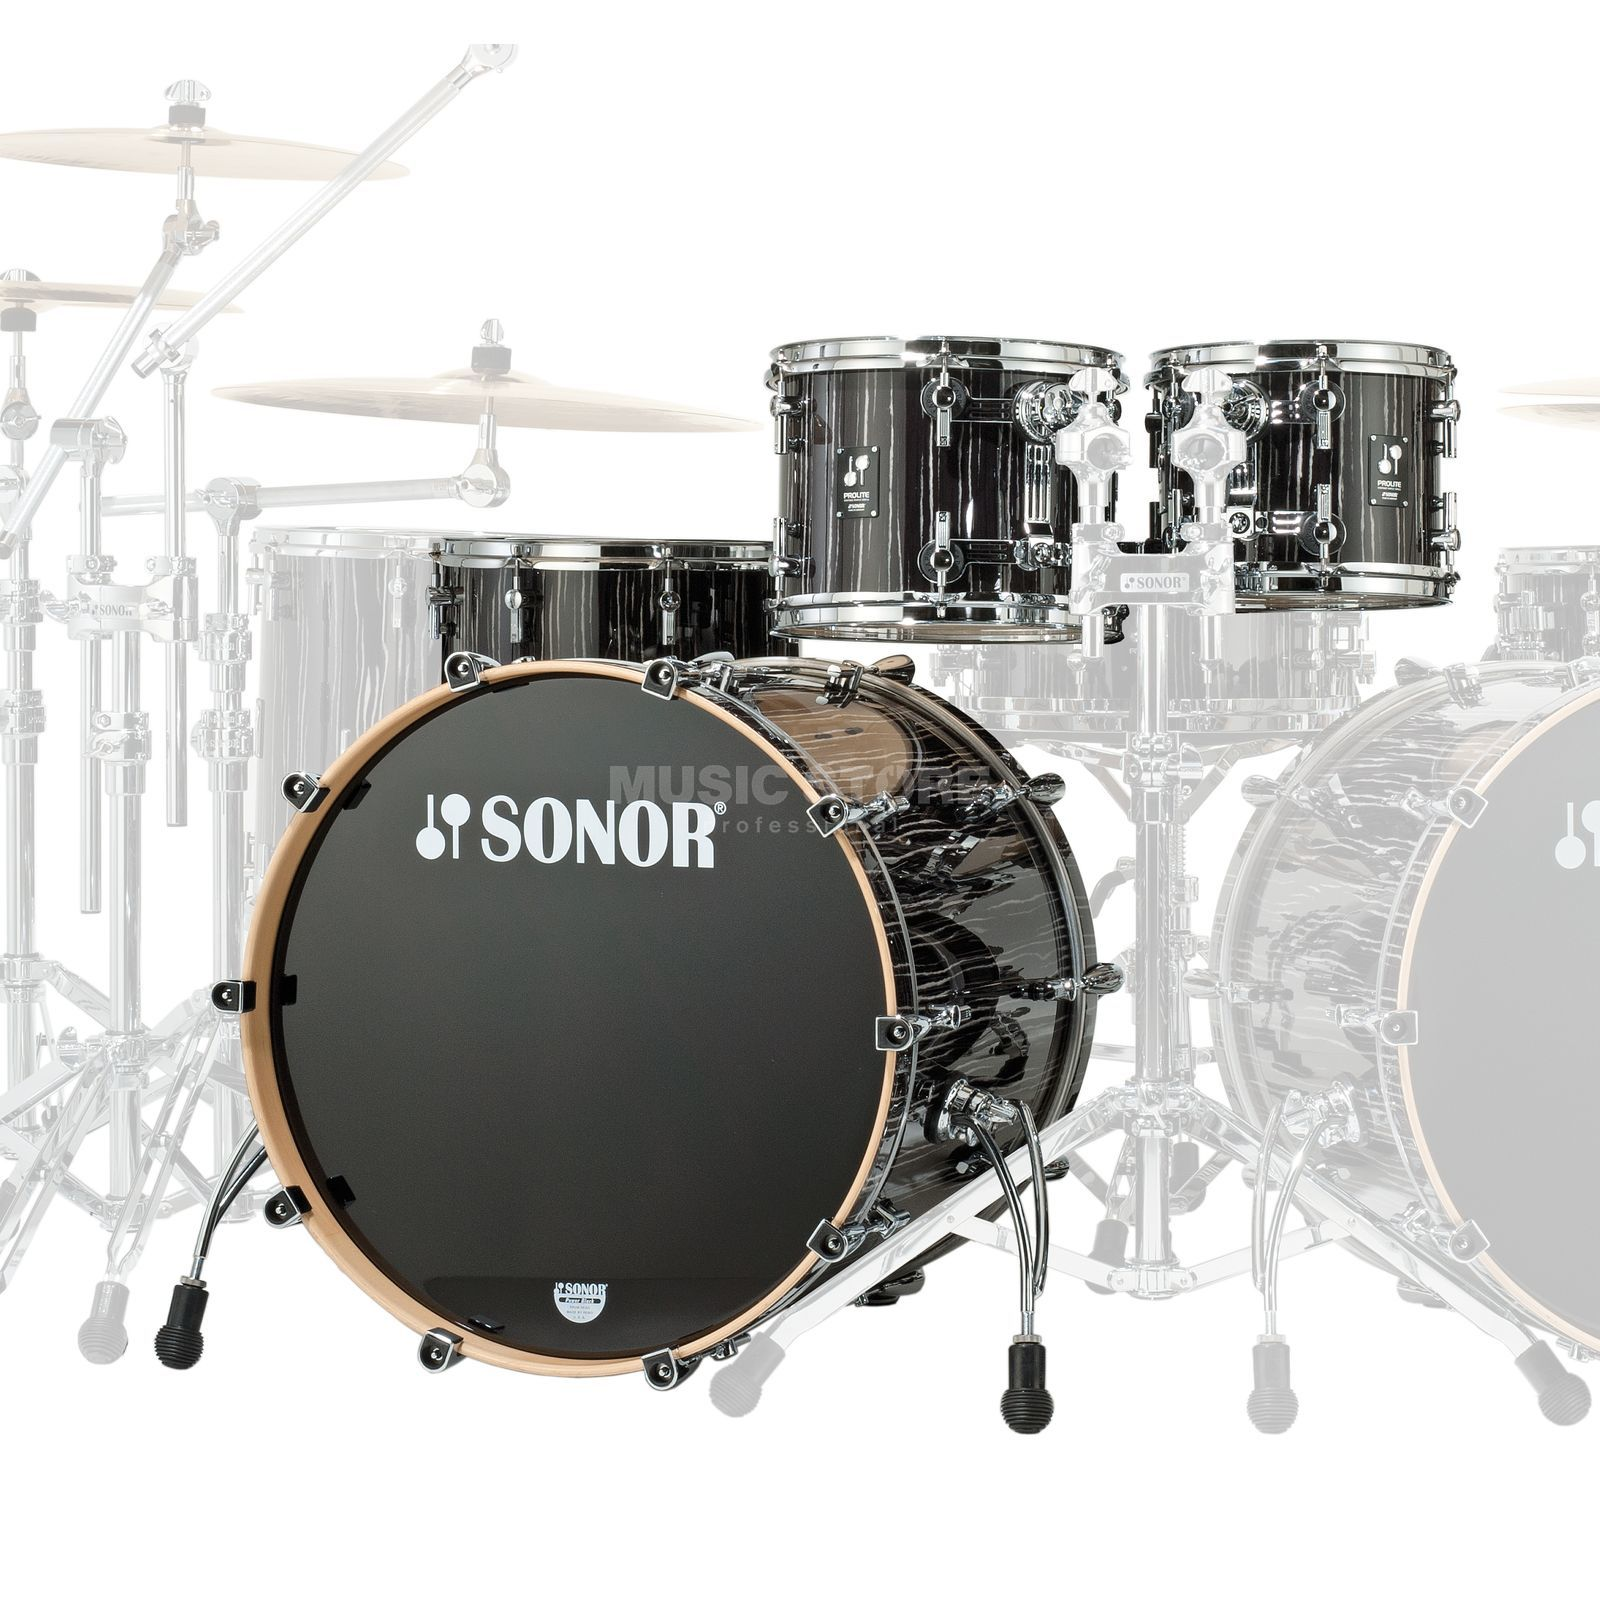 Sonor ProLite Stage 3, Ebony wit Stripes #76 Productafbeelding